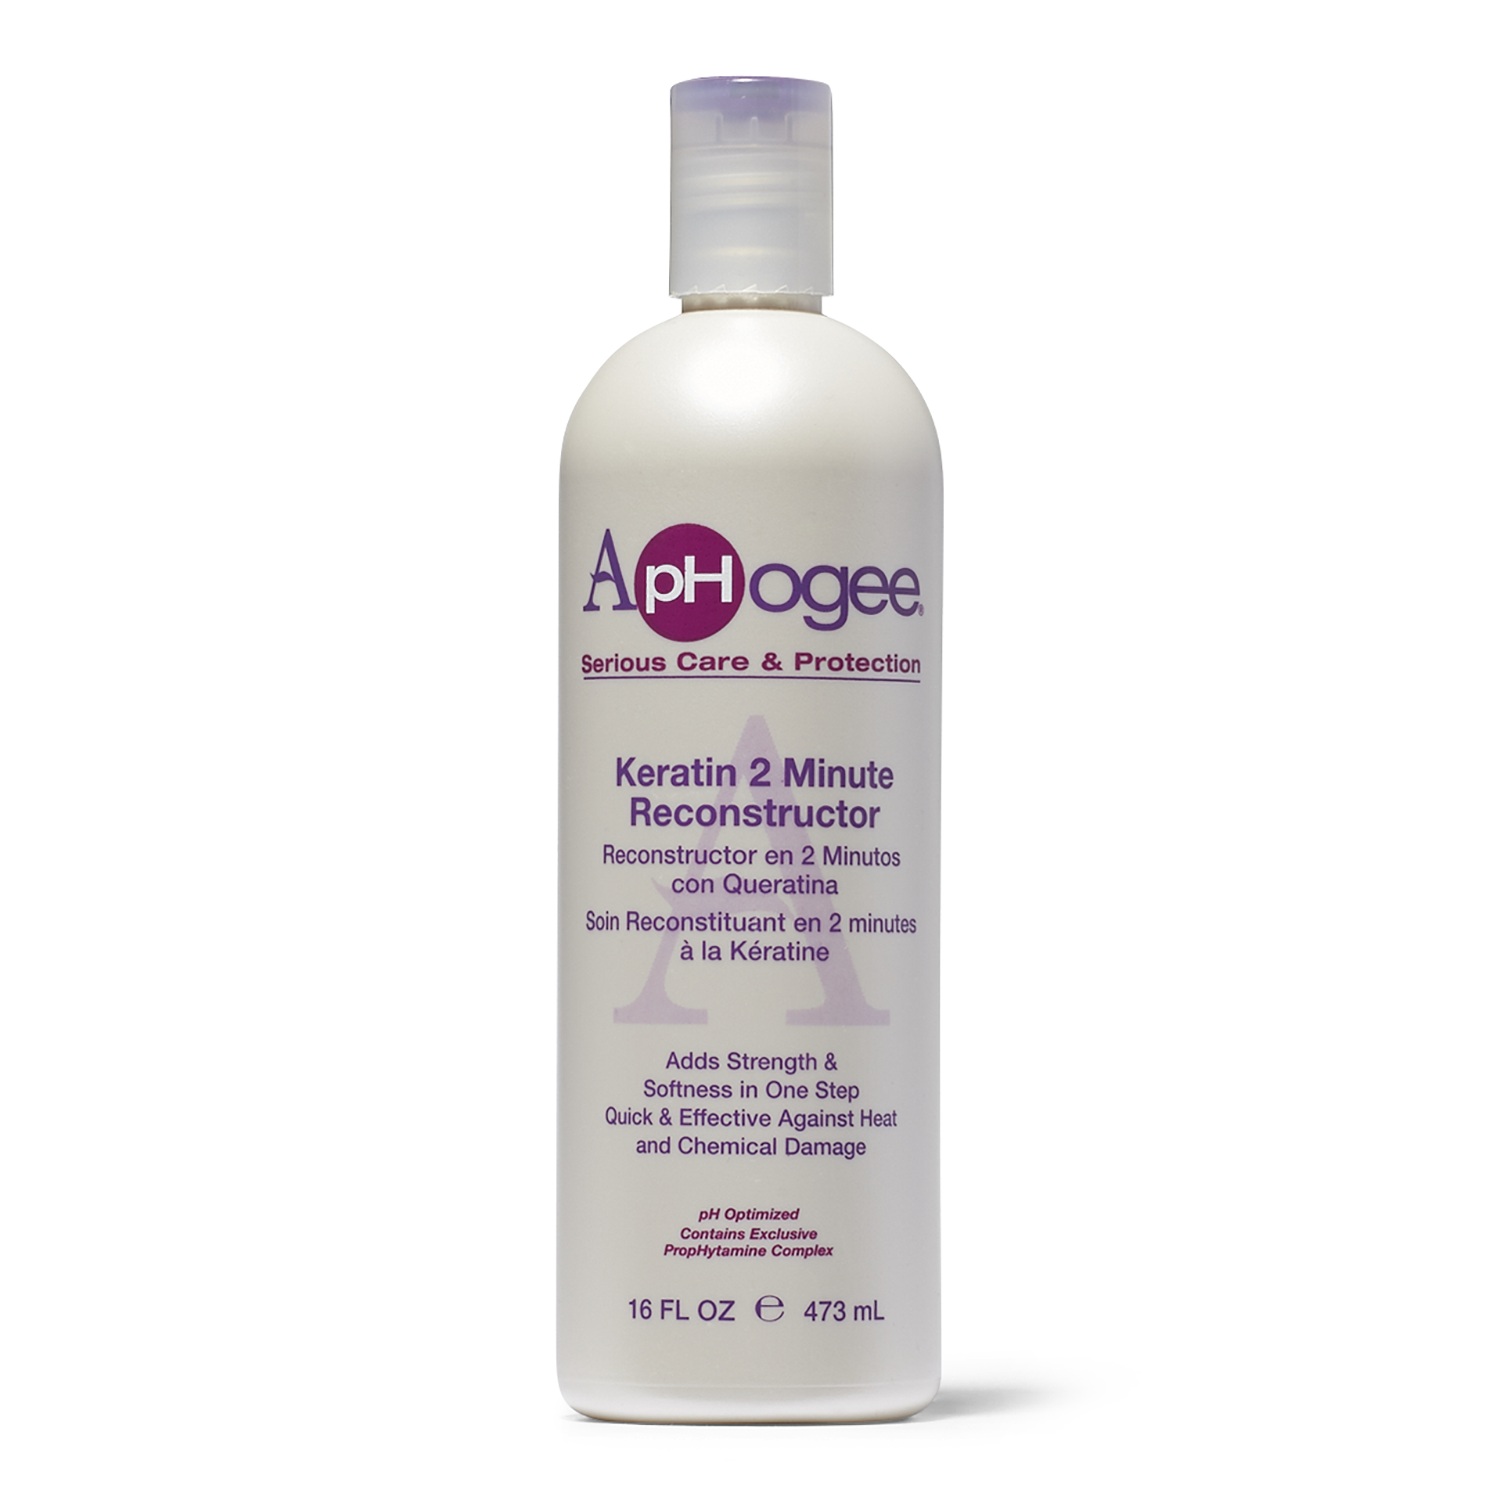 Image result for Aphogee 2 Minute Keratin Reconstructor